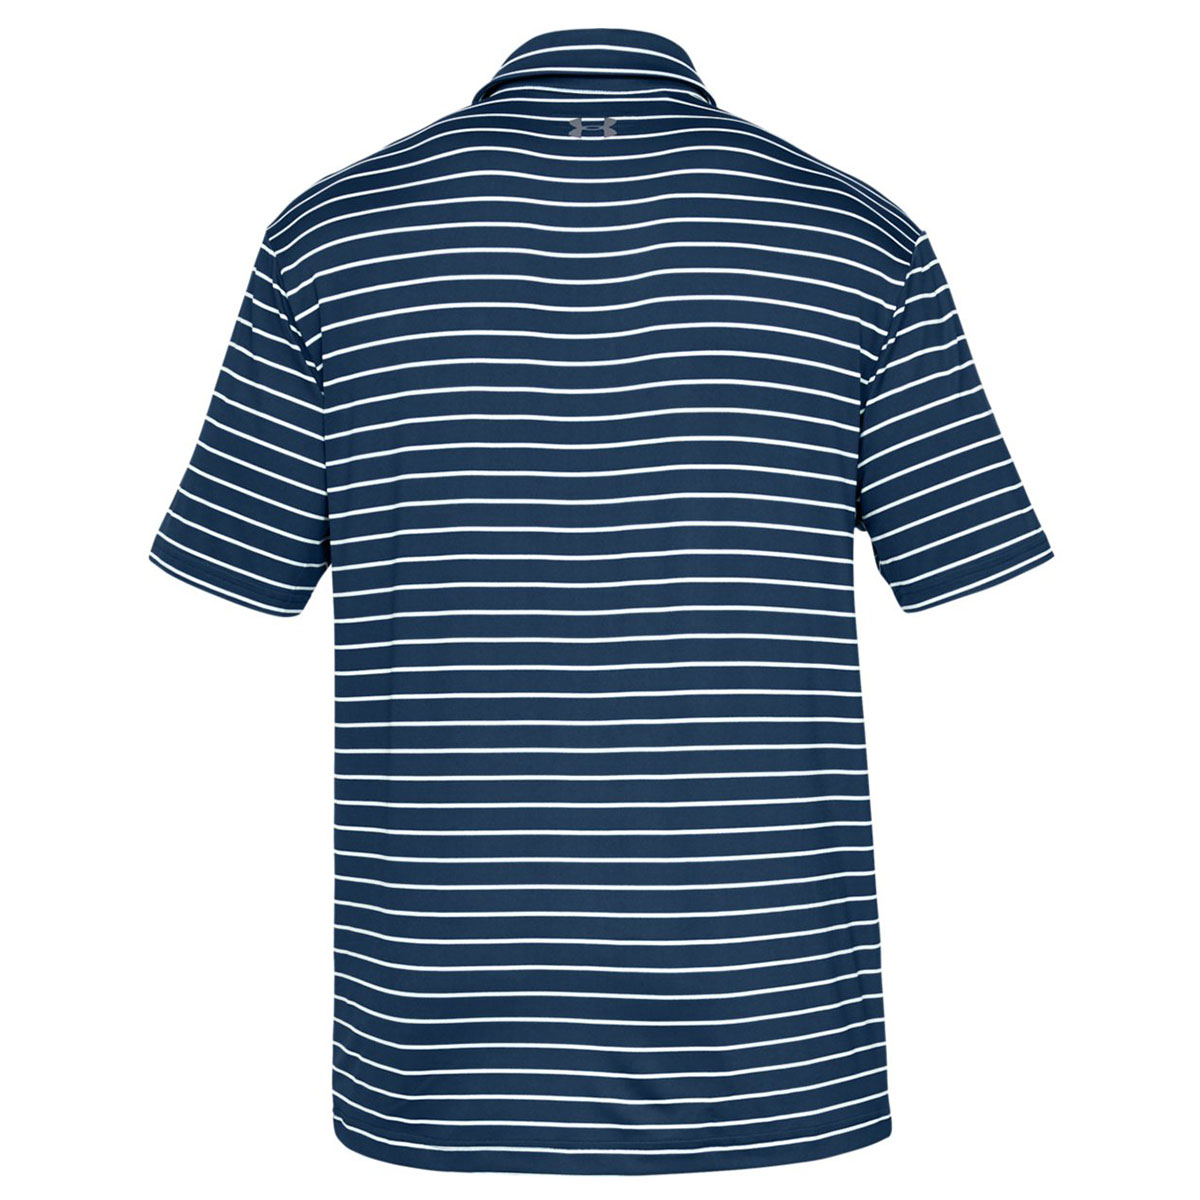 Under-Armour-Mens-2019-Playoff-Polo-2-0-Breathable-Light-Stretch-Polo-Shirt thumbnail 99